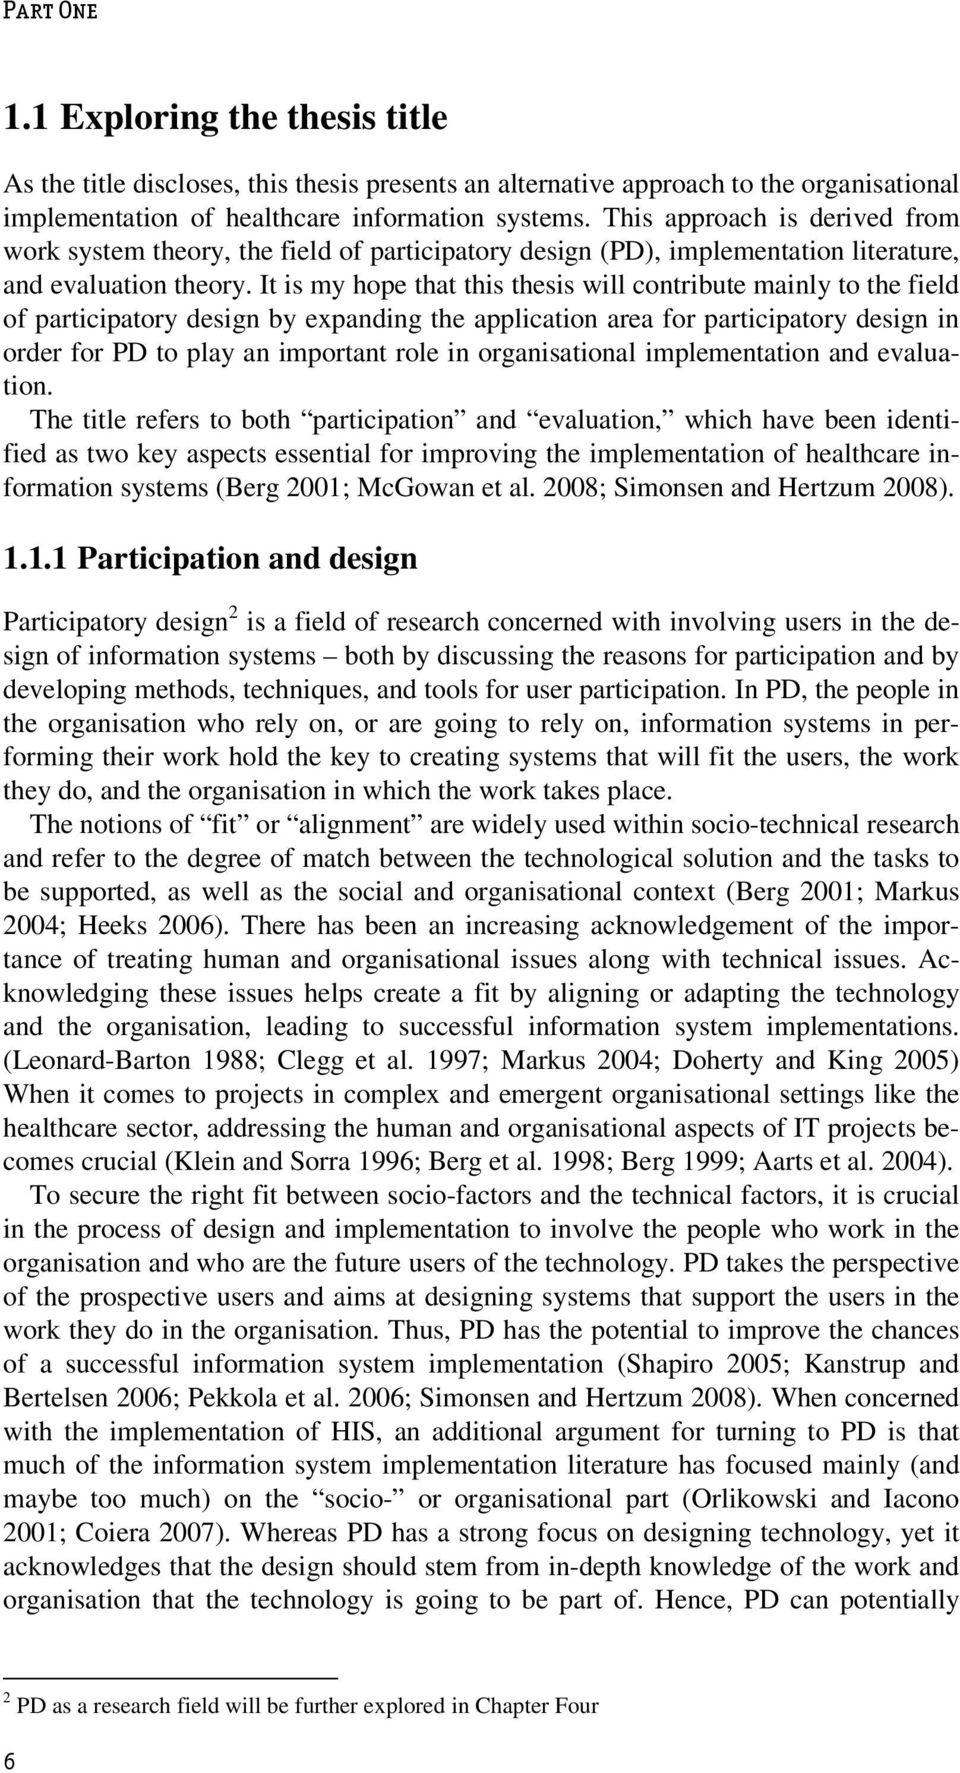 It is my hope that this thesis will contribute mainly to the field of participatory design by expanding the application area for participatory design in order for PD to play an important role in